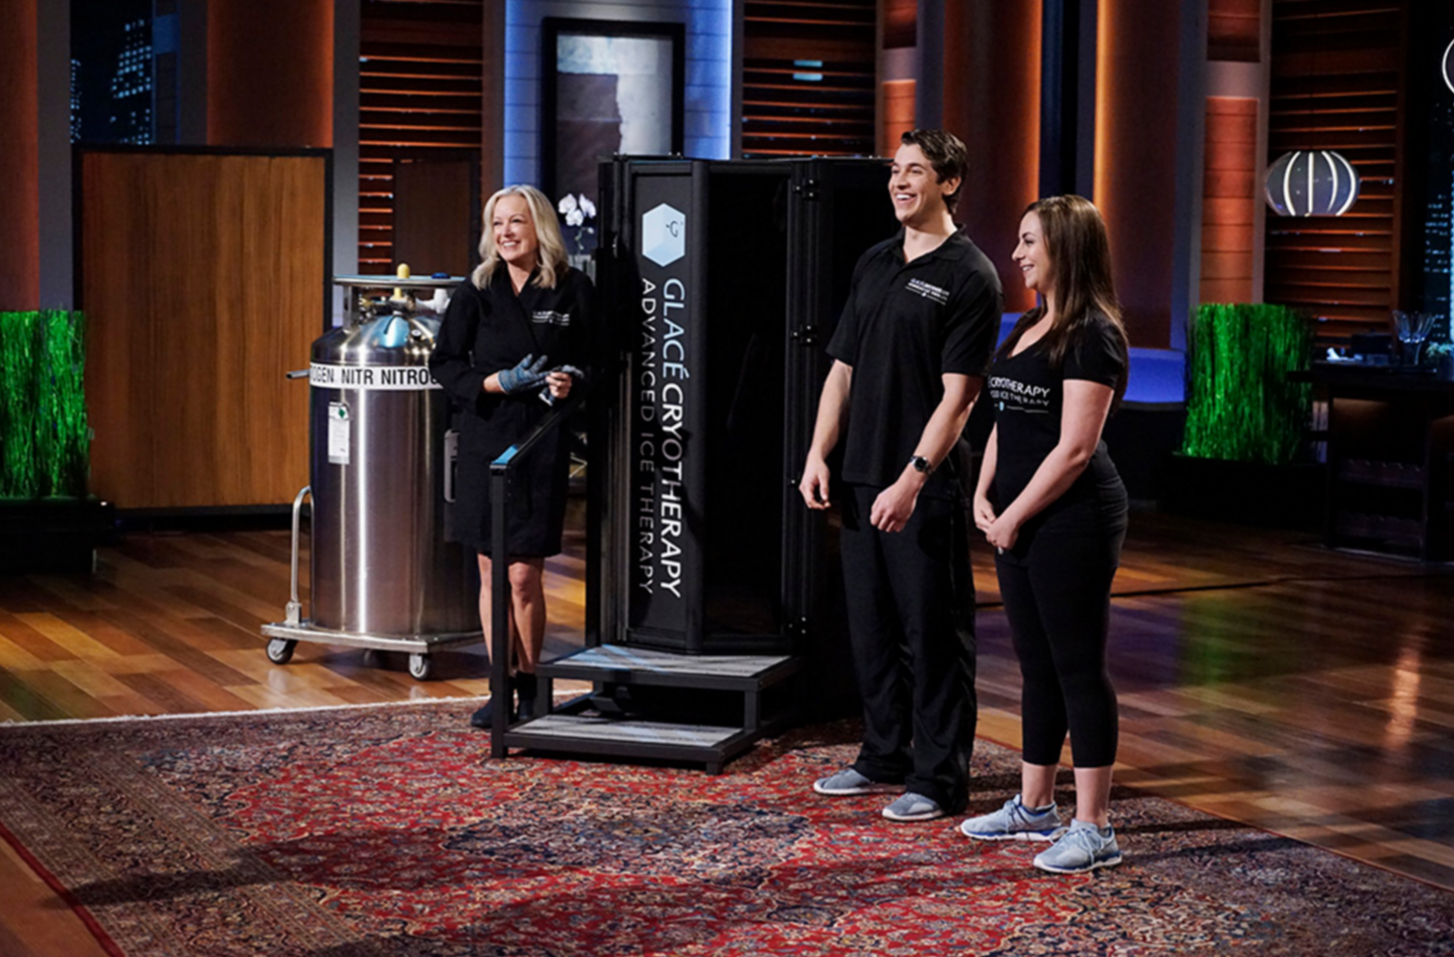 Glacé Cryotherapy Update - What Happened After Shark Tank